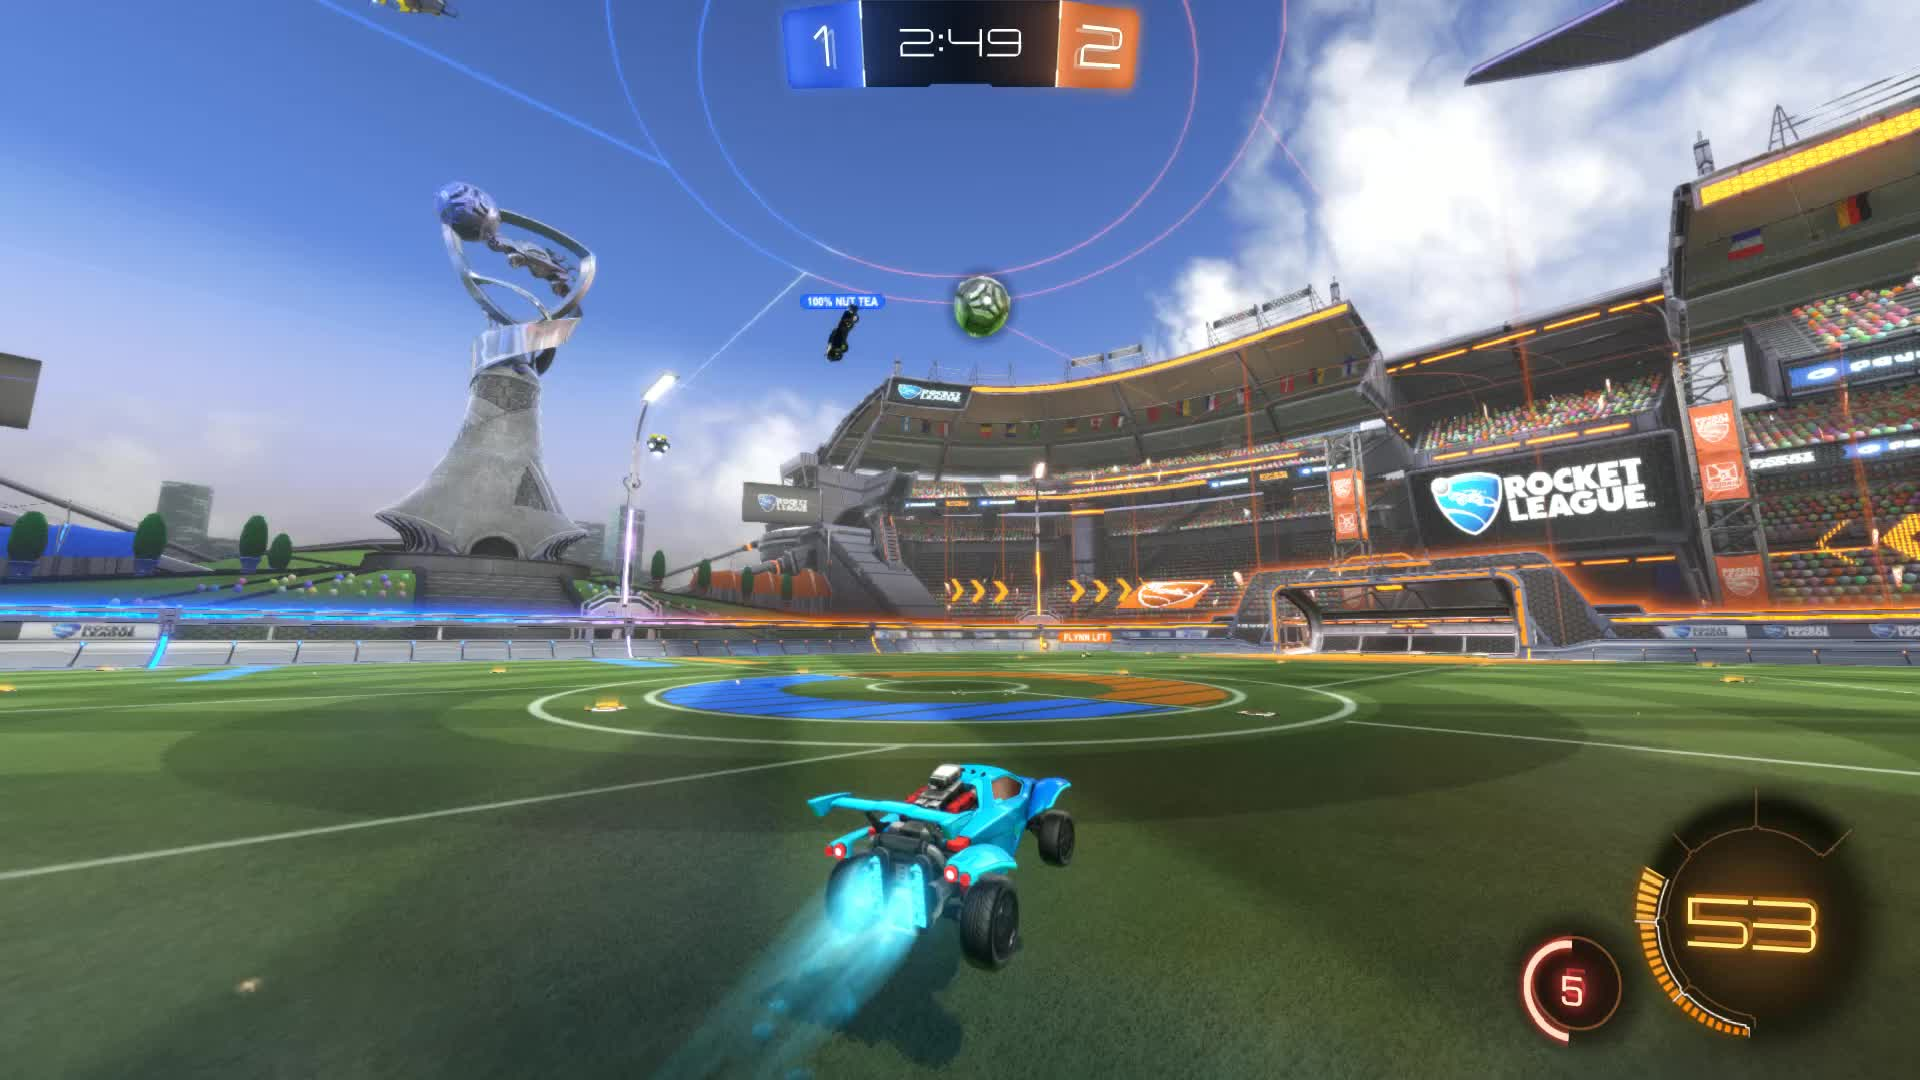 Demo, Gif Your Game, GifYourGame, Rocket League, RocketLeague, Traceur YT, Demo 5: Traceur YT GIFs